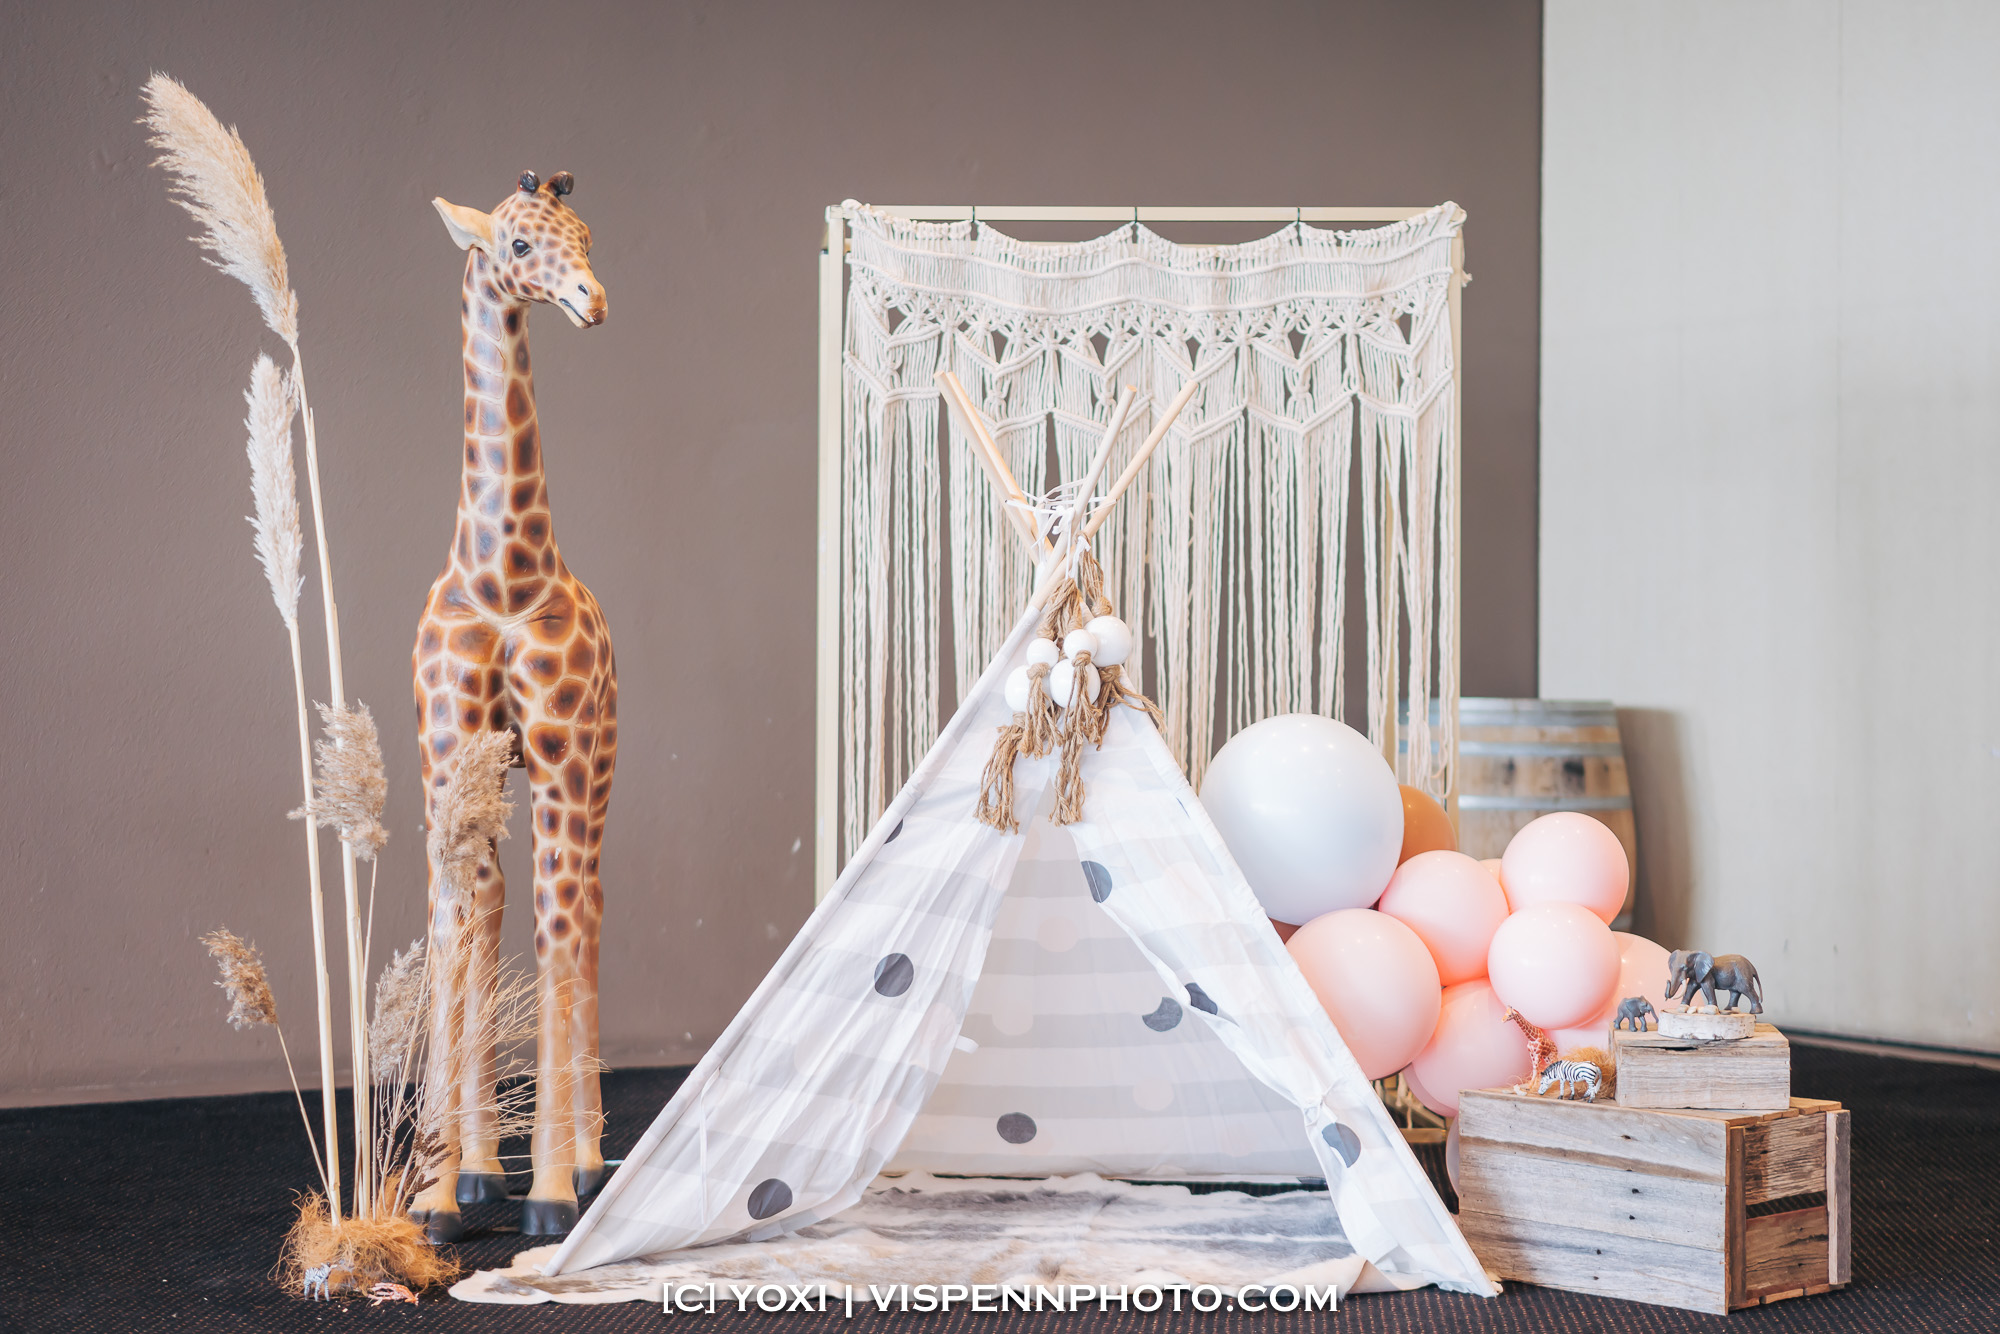 Melbourne Baby Family Birthday Party Photographer 墨尔本 百日宴 满月宴 周岁宴 摄影 VISPENN VISPENN 0045